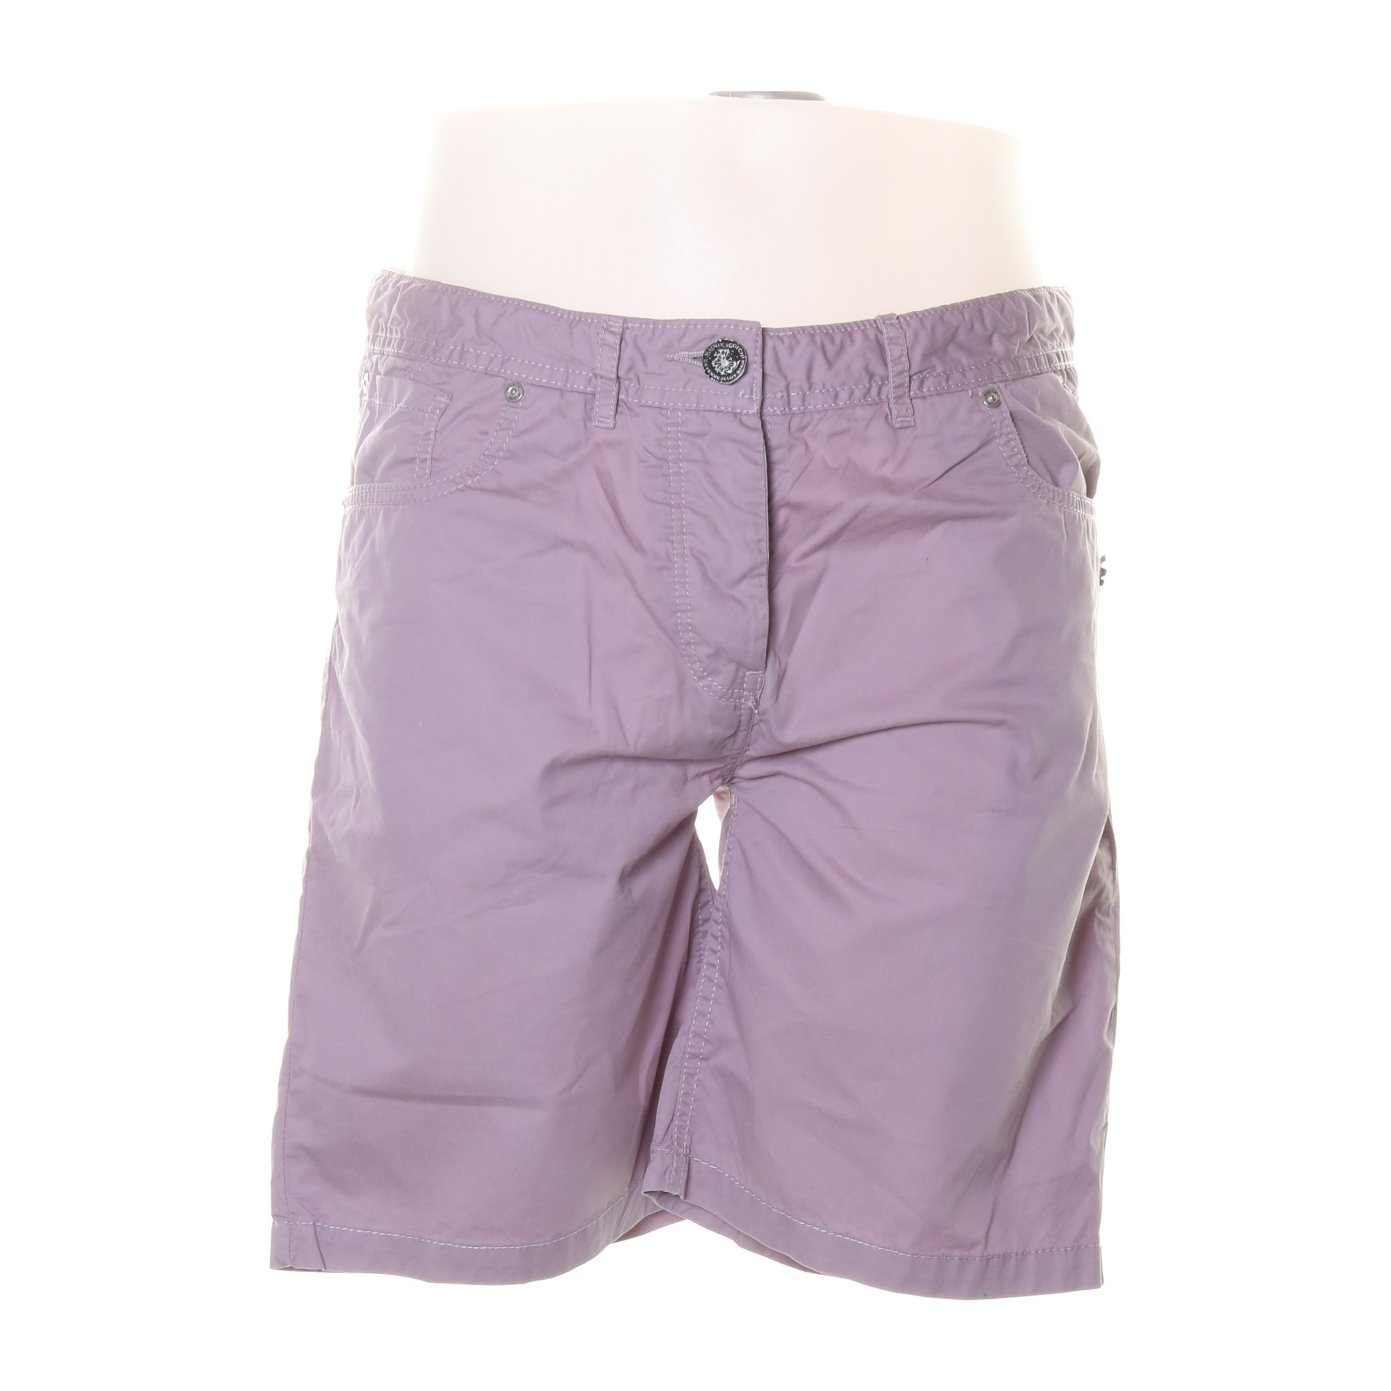 Maison Scotch, Shorts, Strl: 28, Lila, Skinn